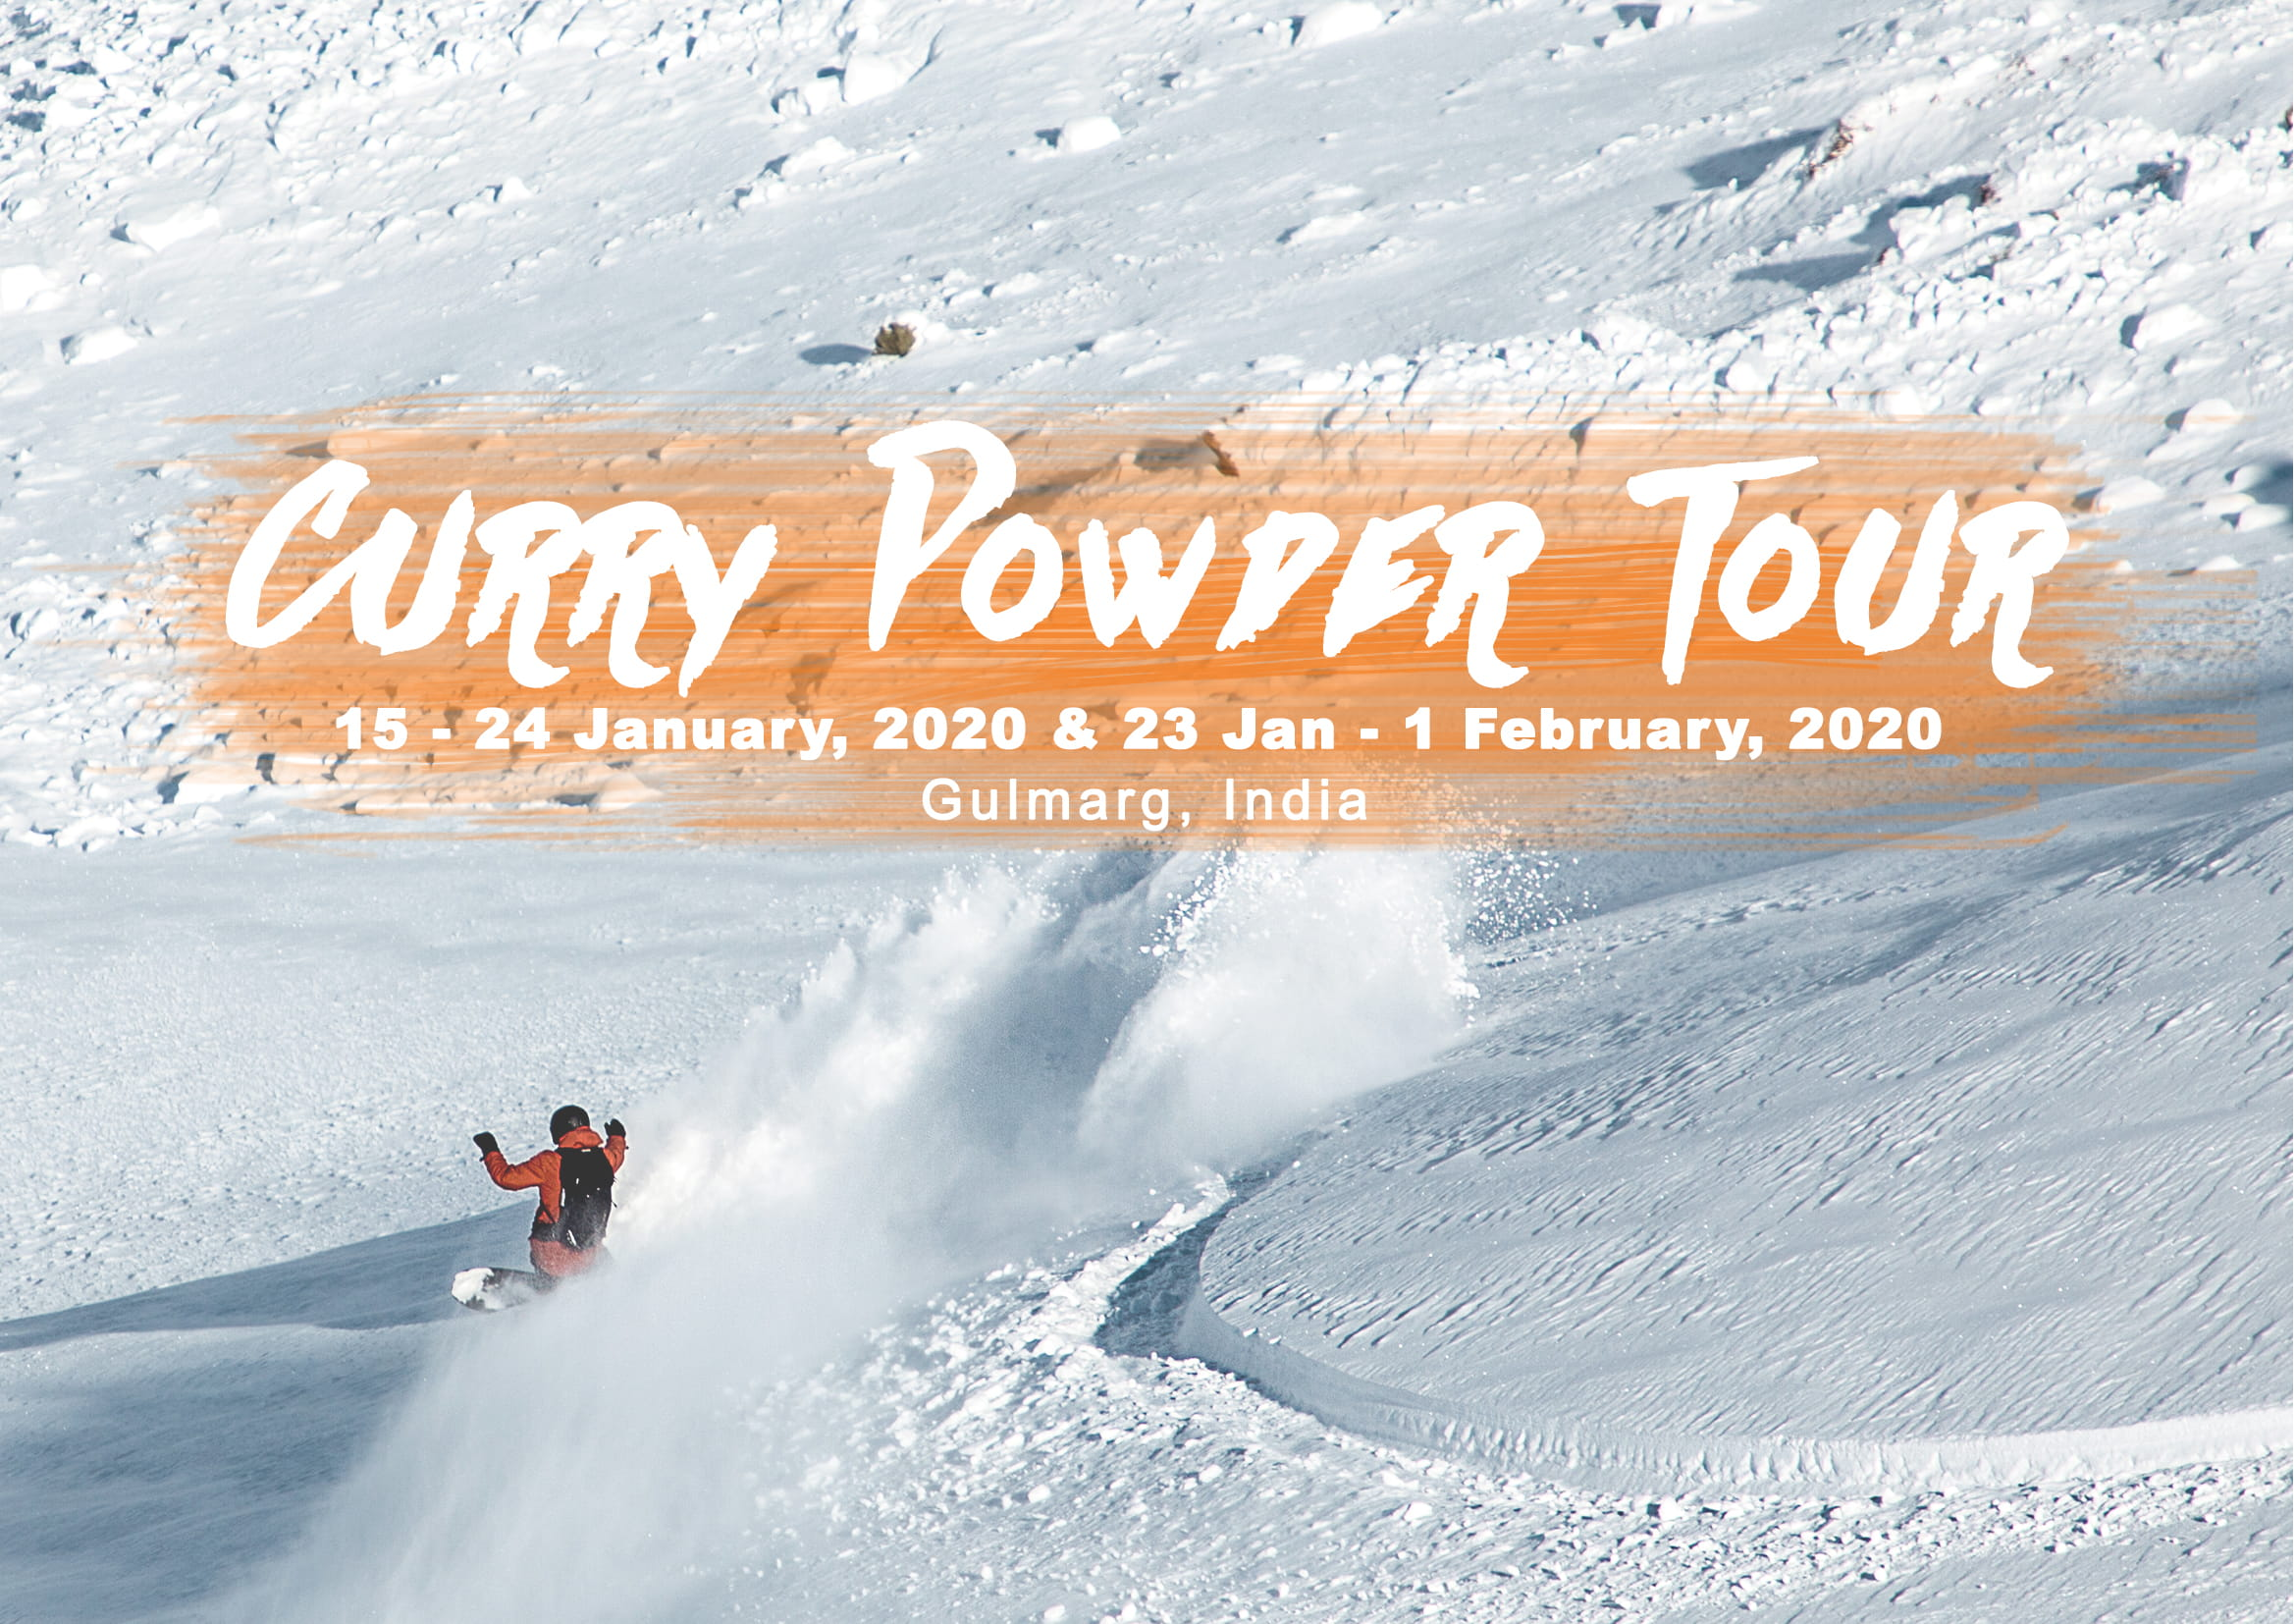 Curry Powder Tour Gulmarg 2020 with First Tours